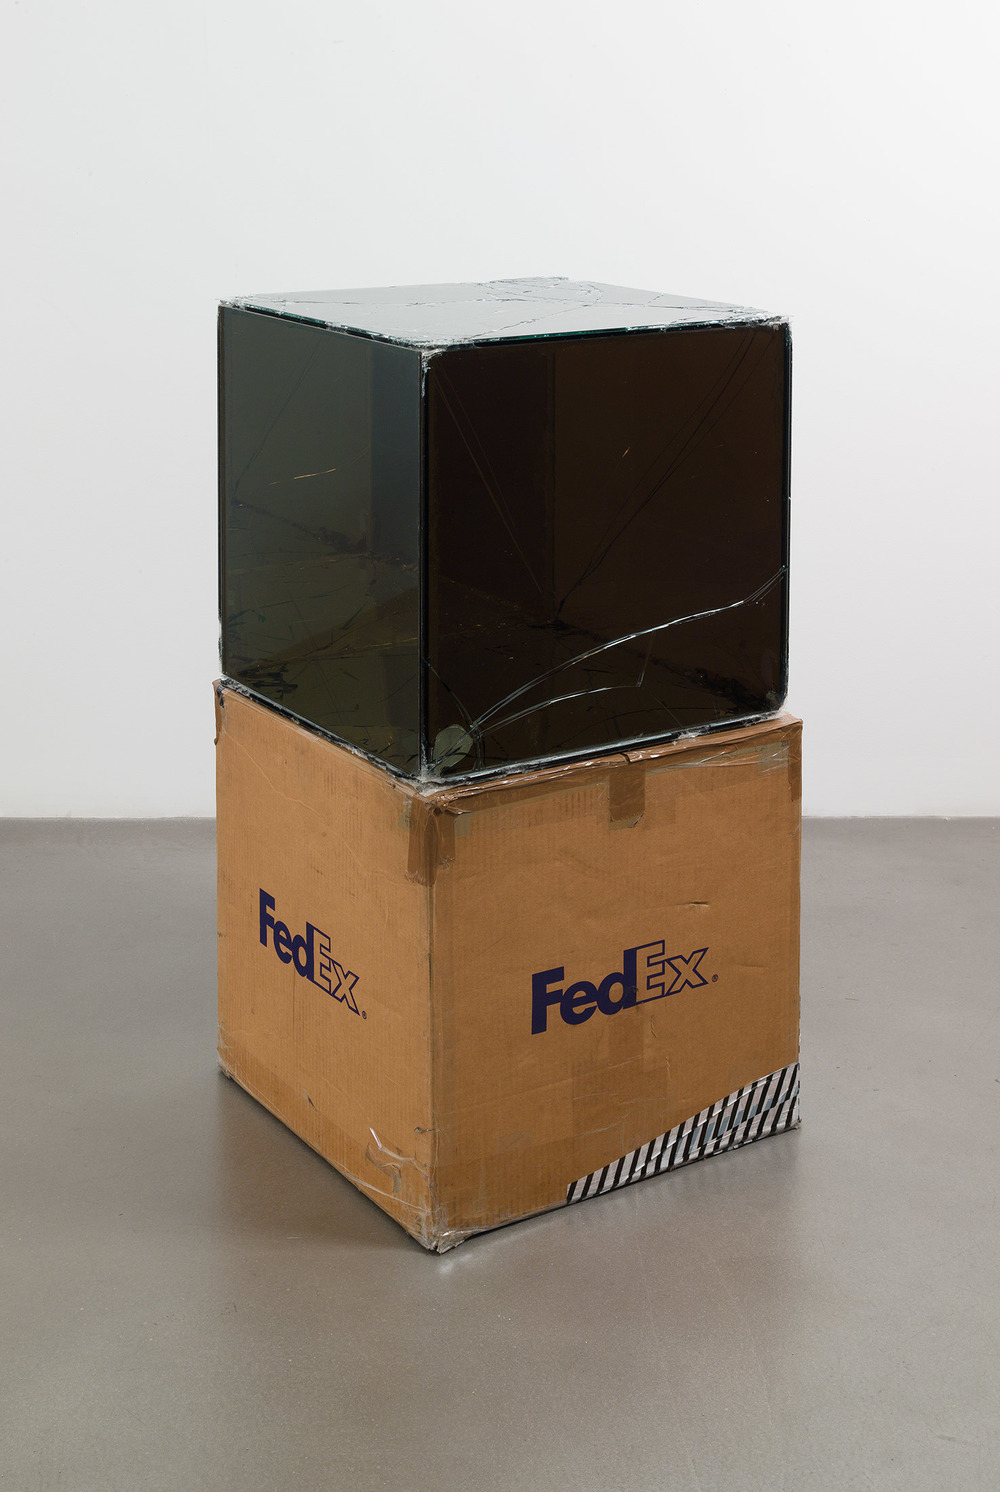 FedEx Large Kraft Box 2005 FEDEX 330508 REV 10/05 SSCC, Standard Overnight, Los Angeles–Oak Park trk#865344981196, September 17–18, 2008, Standard Overnight, Oak Park–Los Angeles trk#865326699753, March 12–13, 2009, Standard Overnight, Los Angeles–New York trk#774901624186, November 4–5, 2015, Standard Overnight, New York–Los Angeles trk#775241295627, December 21–22, 2015    2008–   Laminated Mirropane, FedEx shipping box, accrued FedEx shipping and tracking labels, silicone, metal, tape  20 x 20 x 20 inches   Great Hall Exhibition, 2015